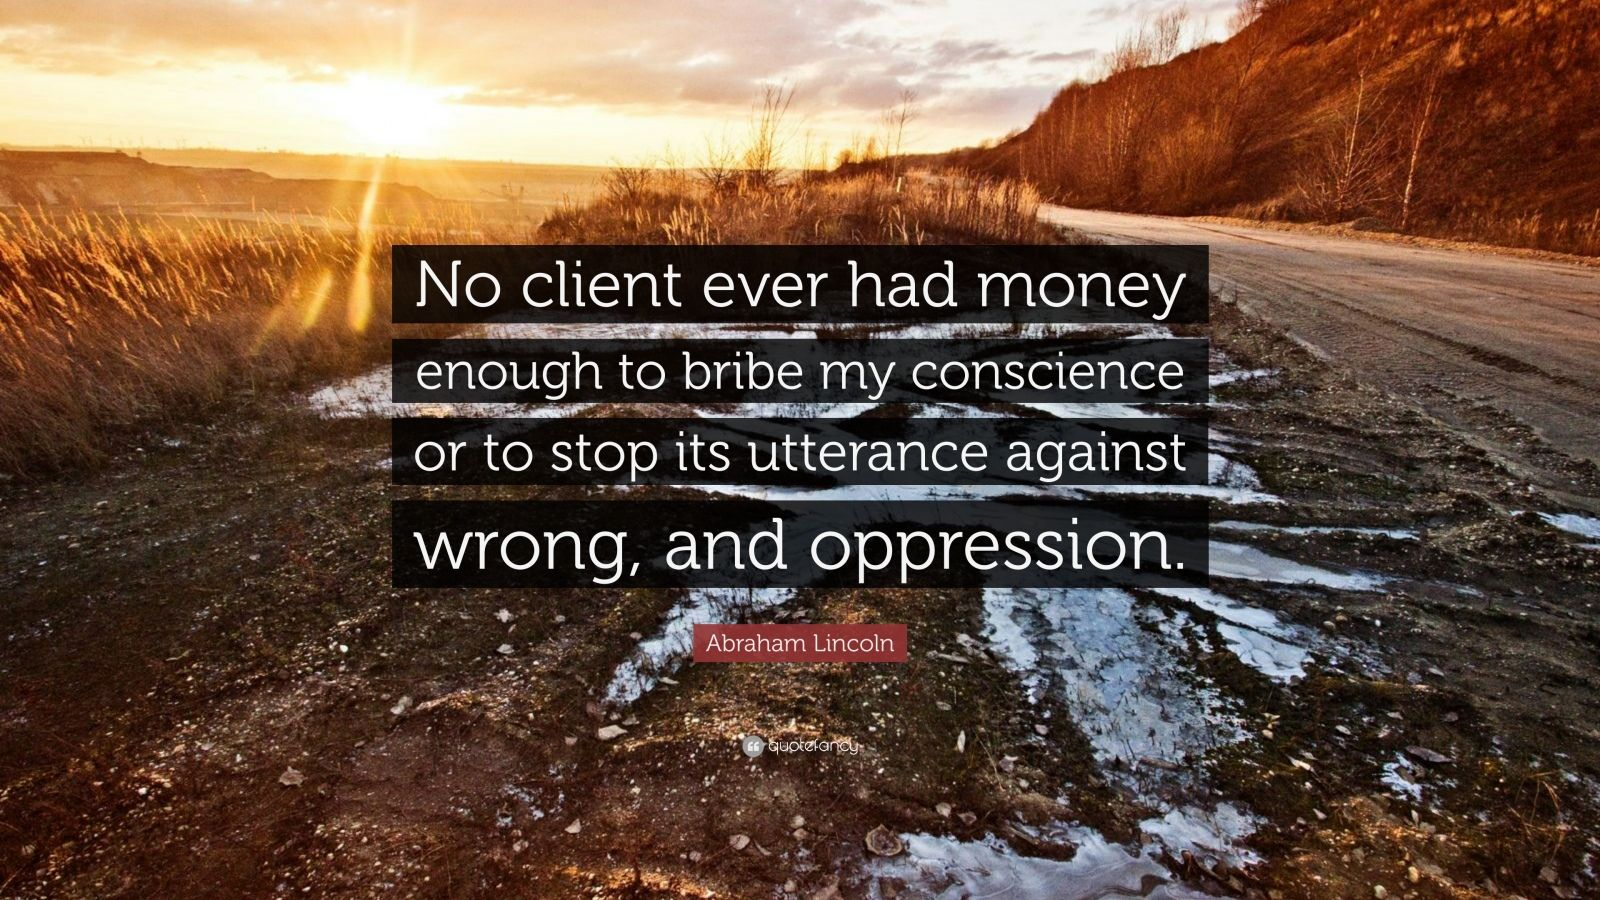 """Abraham Lincoln Quote: """"No client ever had money enough to bribe my conscience or to stop its utterance against wrong, and oppression."""""""